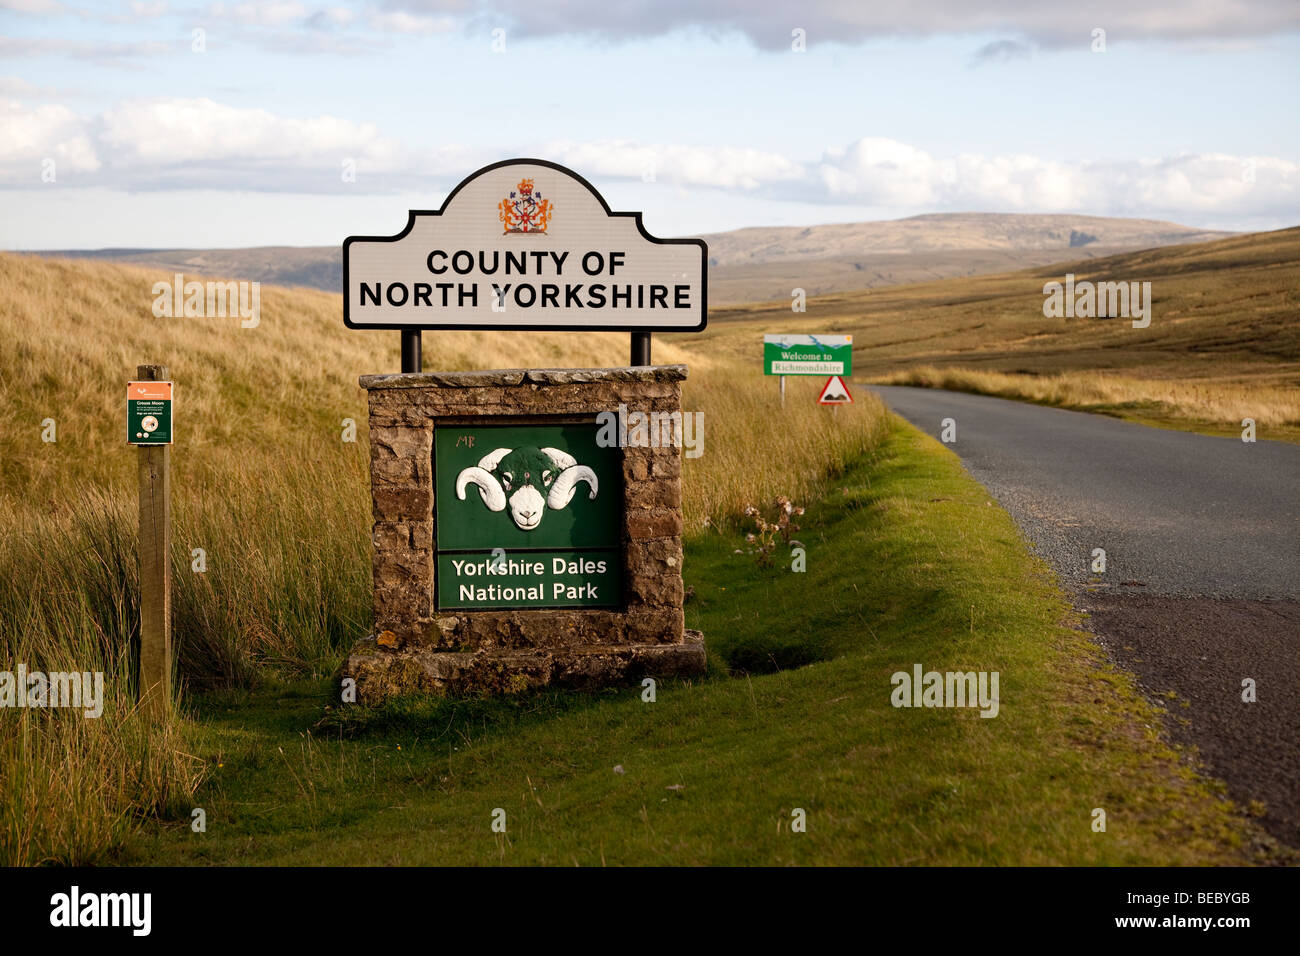 Sign for Yorkshire Dales National Park and North Yorkshire County, UK - Stock Image